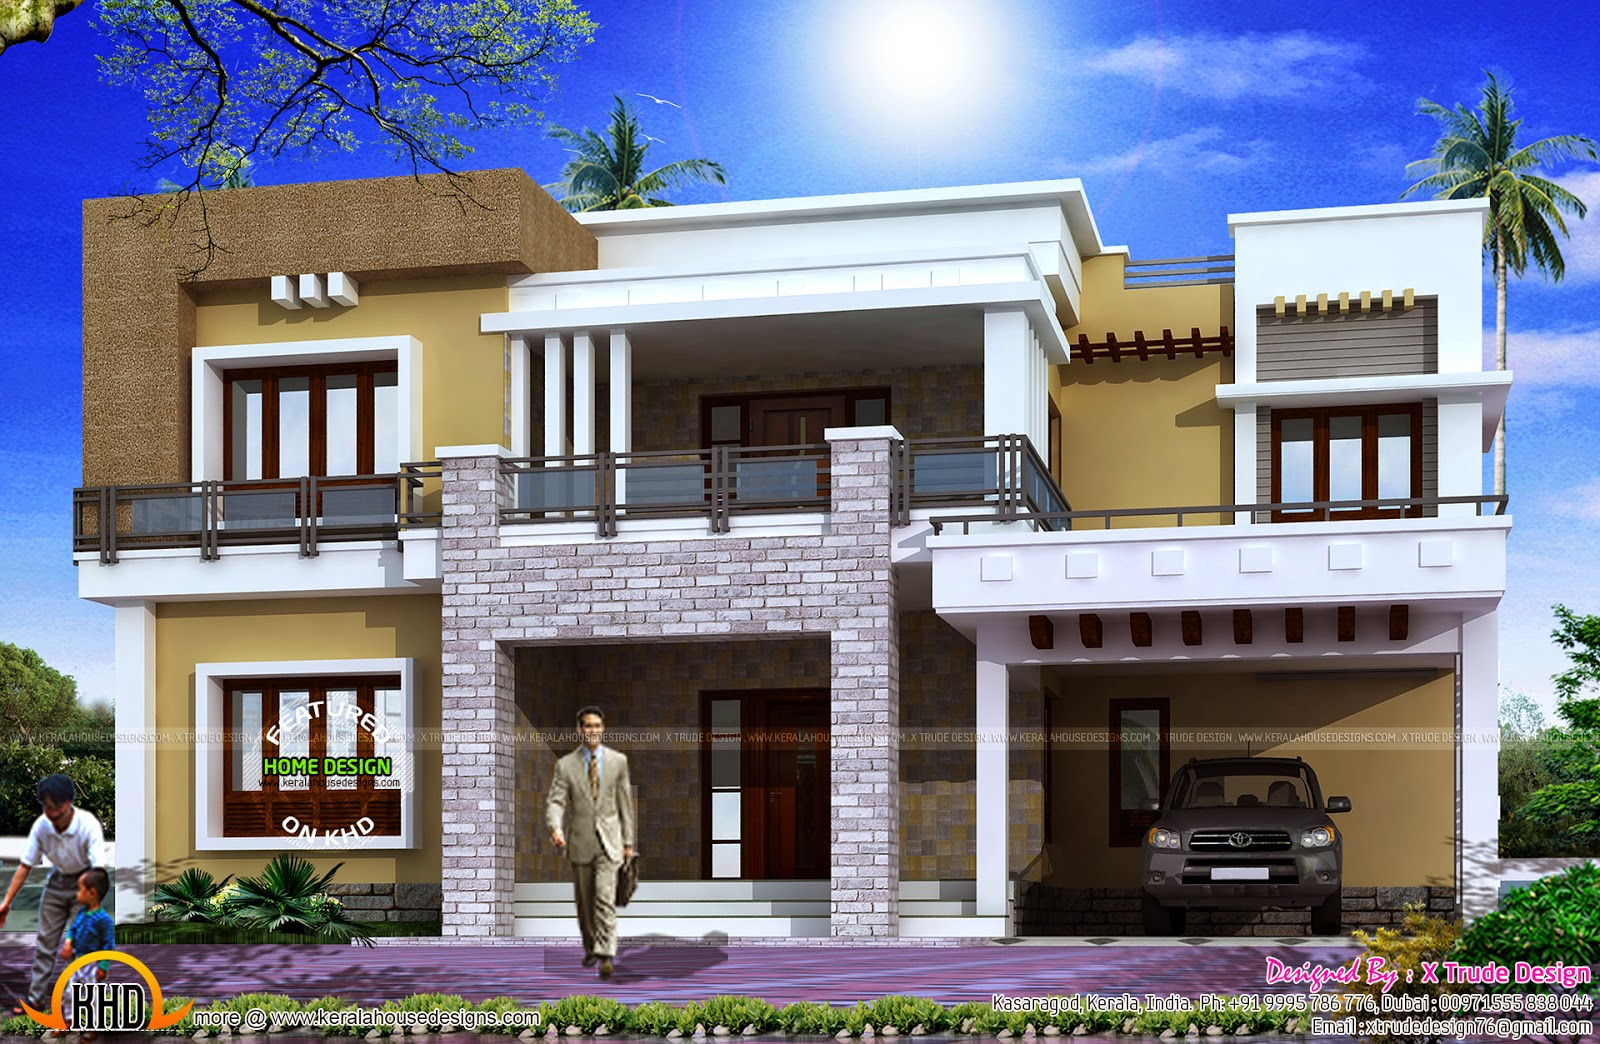 Keralahousedesigns july 2015 for Front exterior home designs